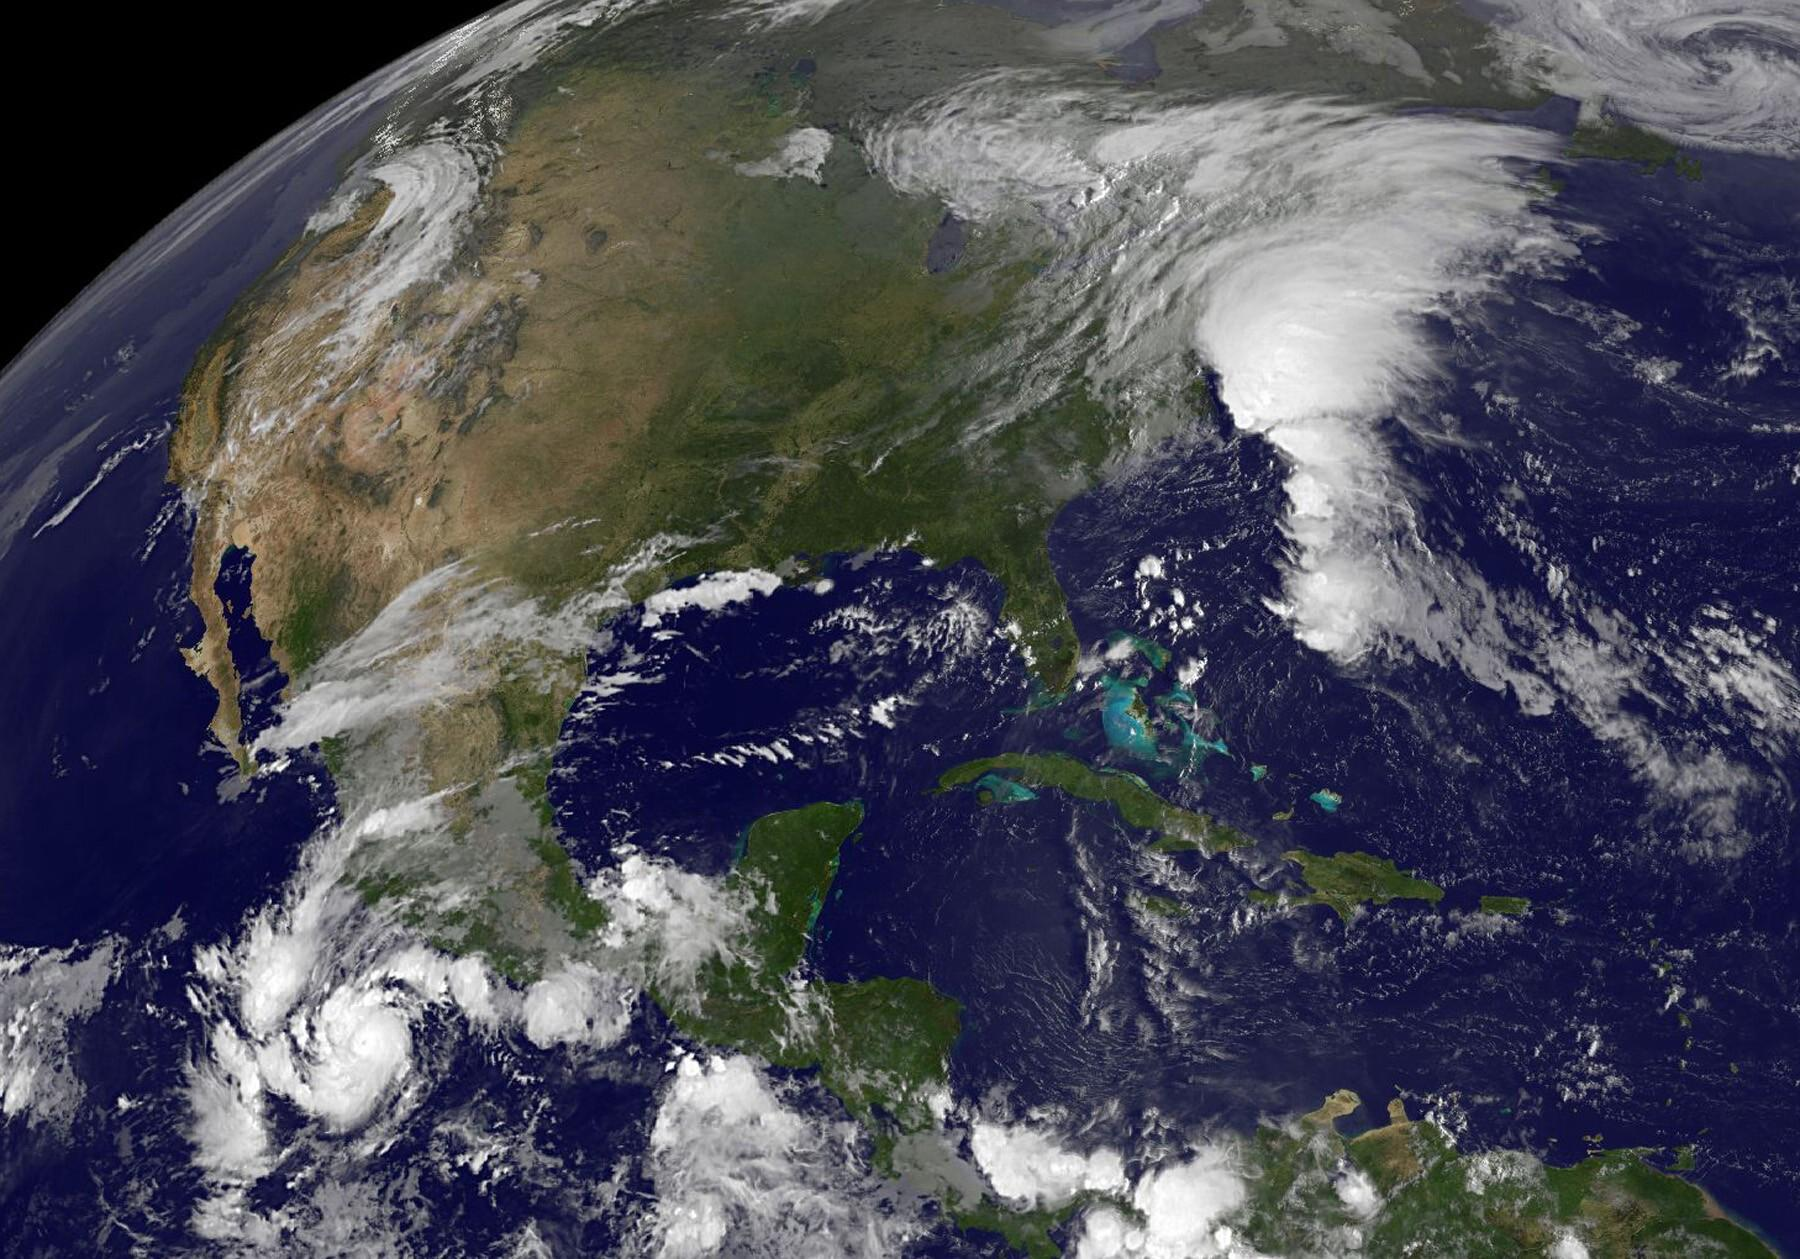 GOES captures Tropical Storm Danny